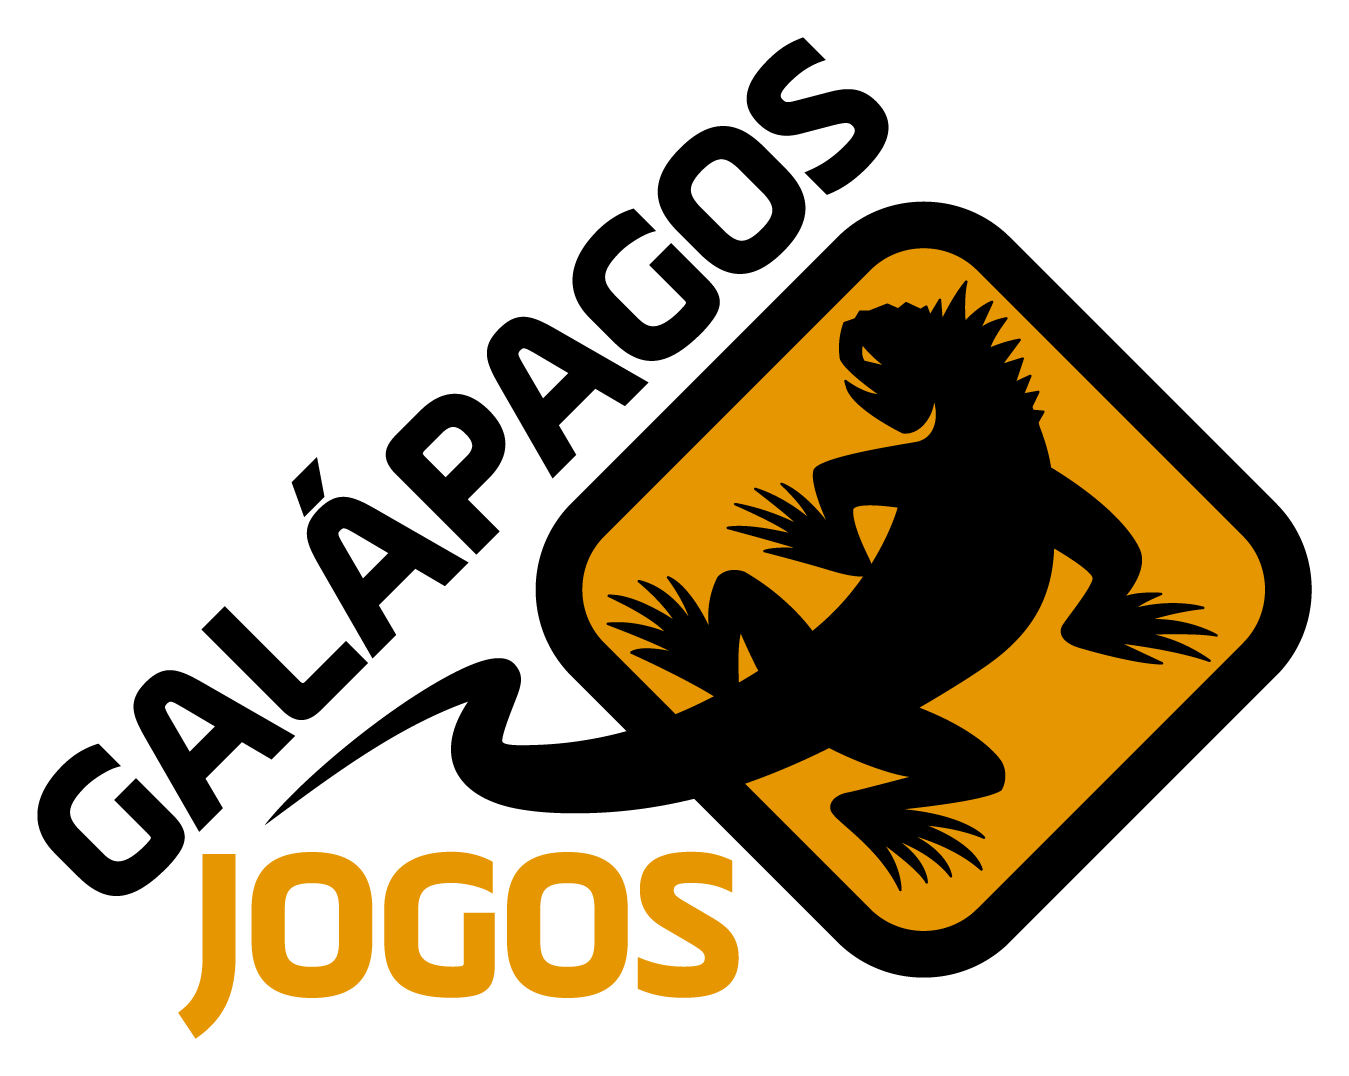 Galápagos